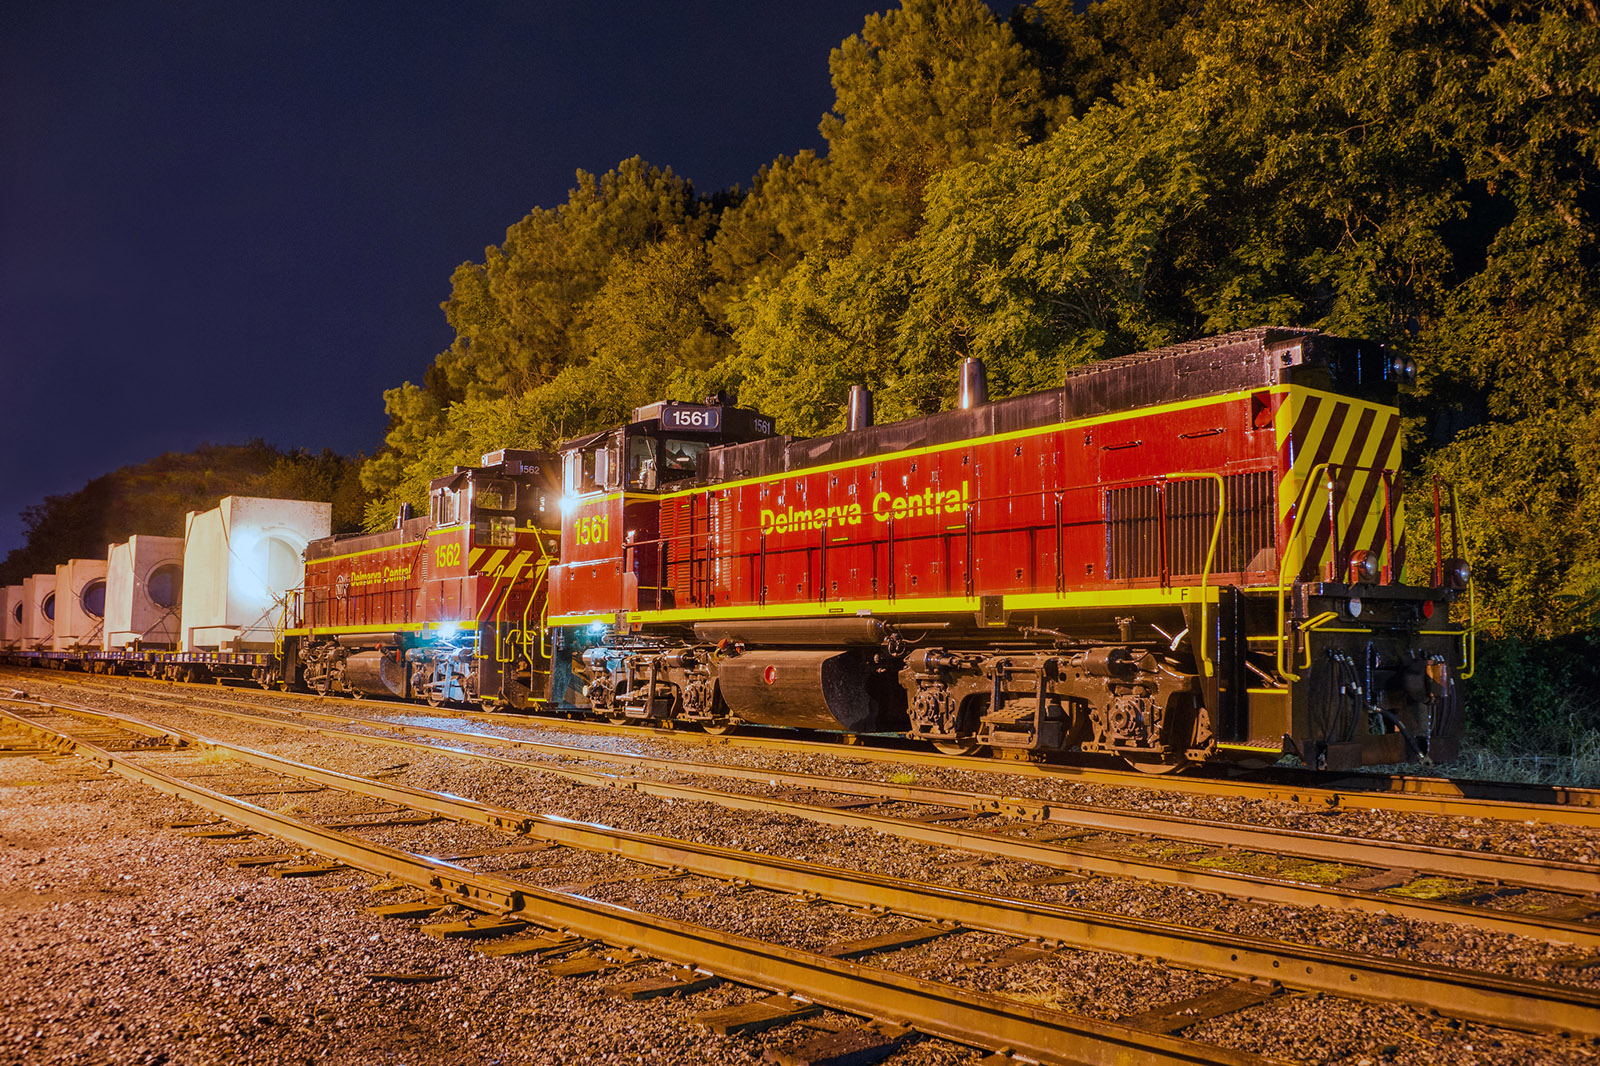 Delmarva Central Railroad dimensional shipment